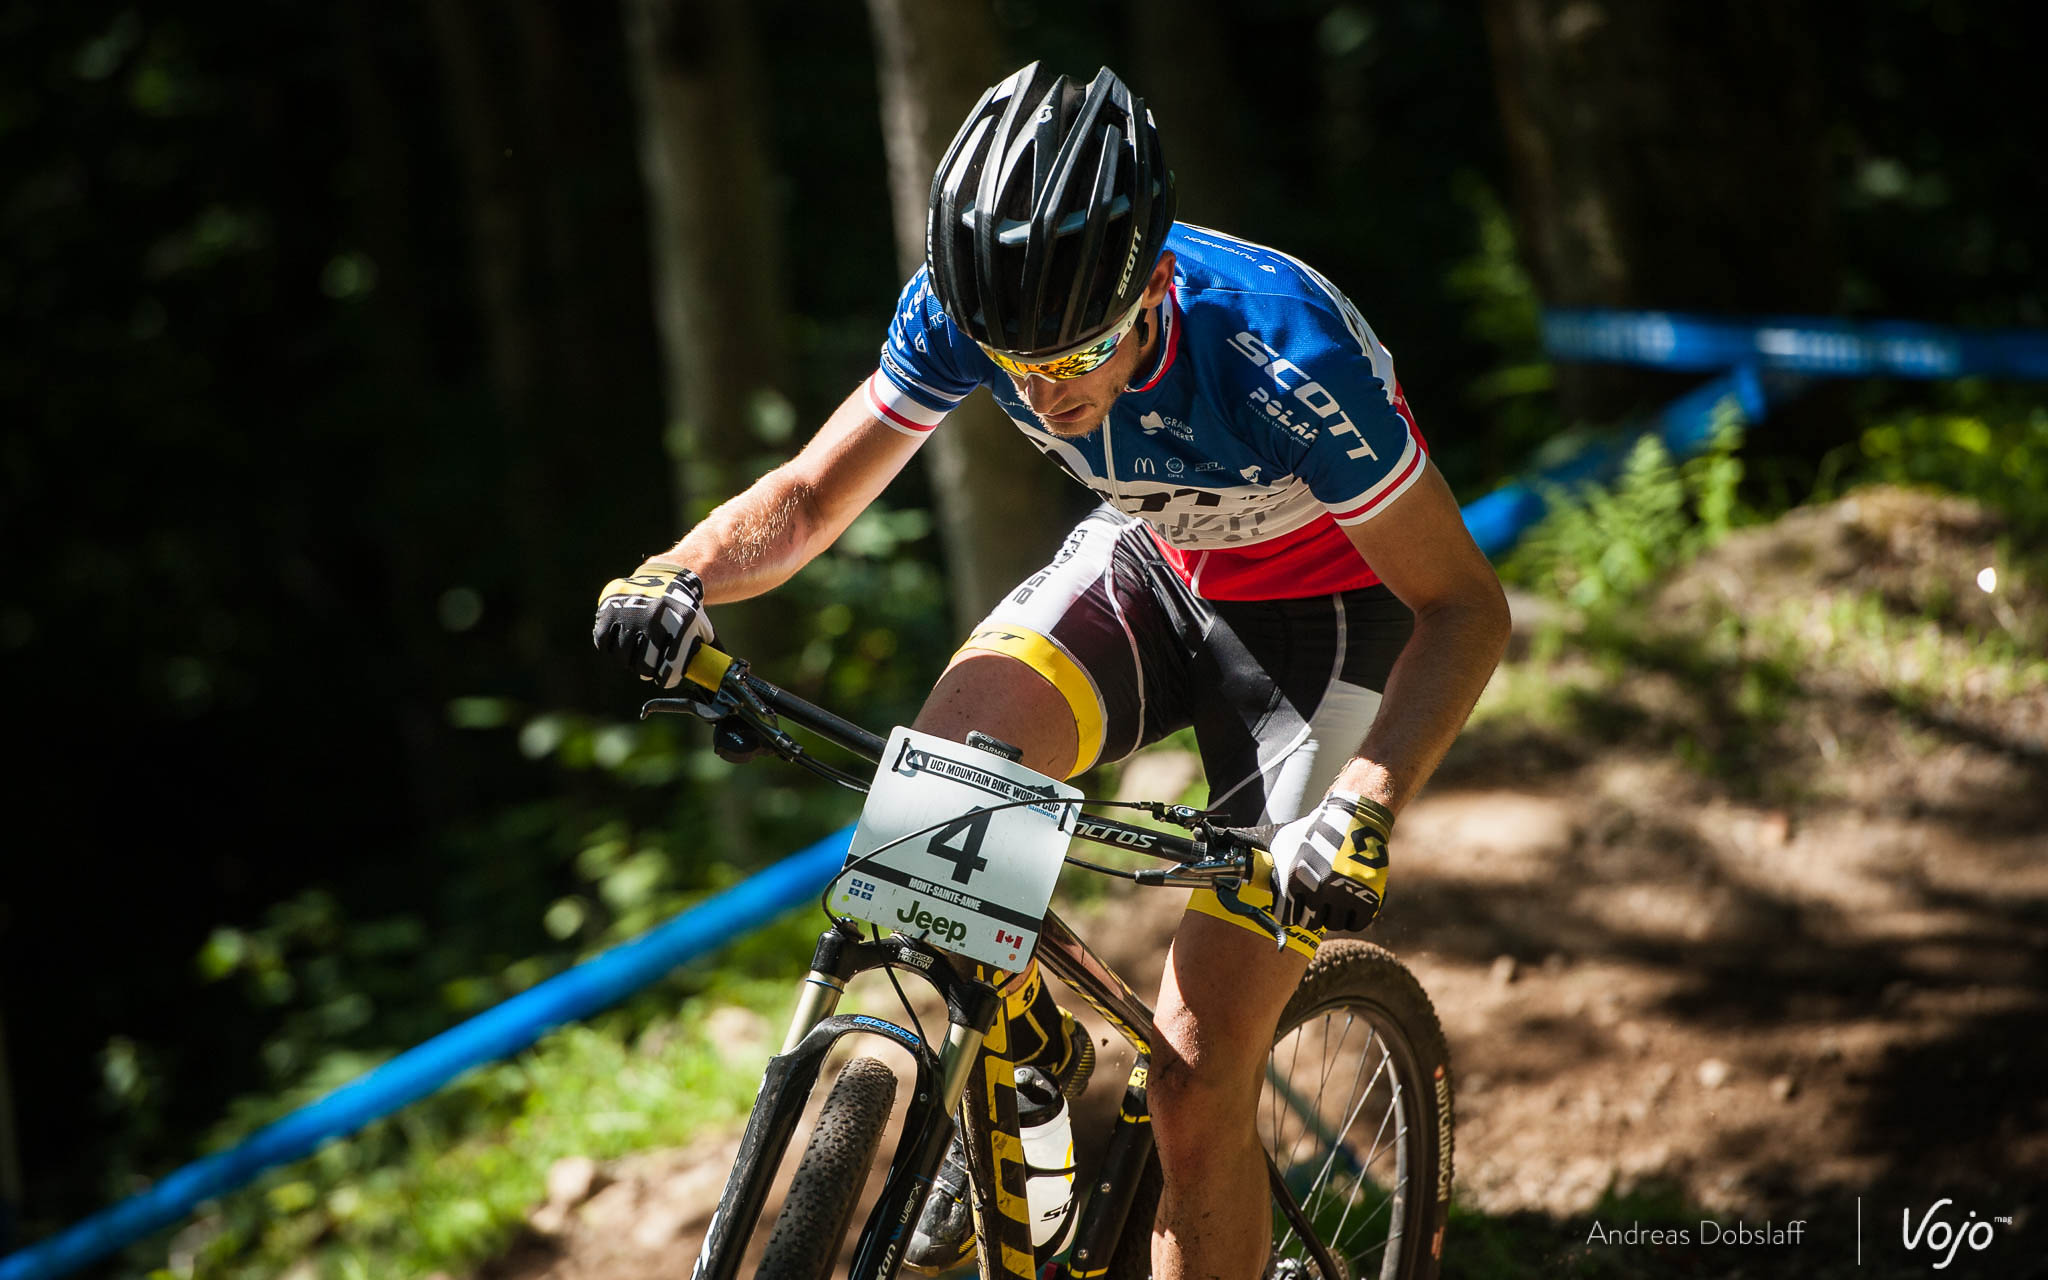 World_Cup_XC_Mont_Saint_Anne_MSA_2015_Carod_Copyright_ADobslaff_VojoMag-5